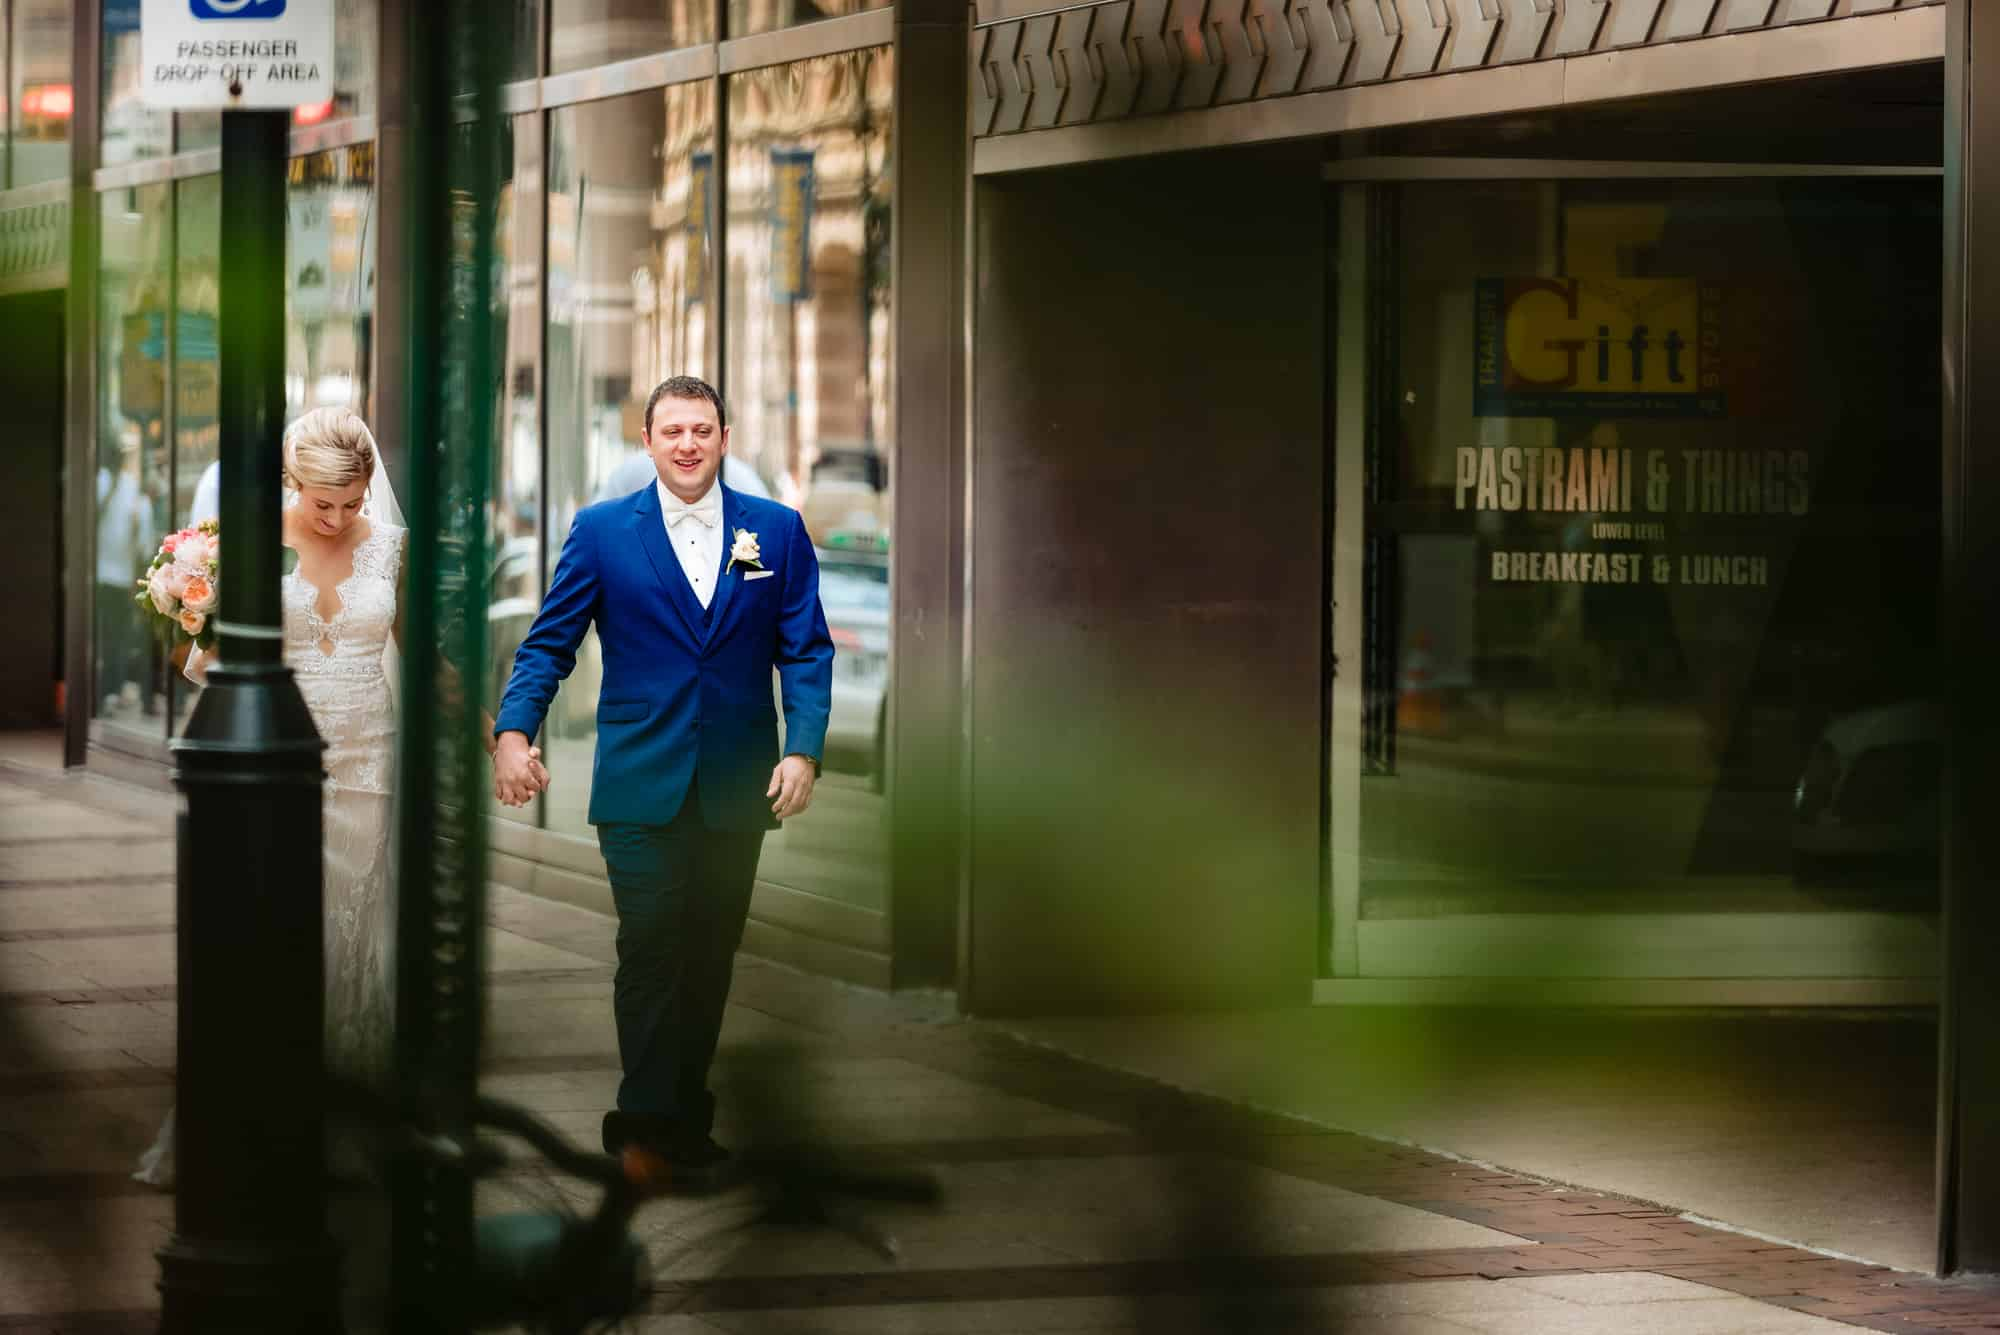 wedding day, photo thru bushes of bride and groom walking down the street